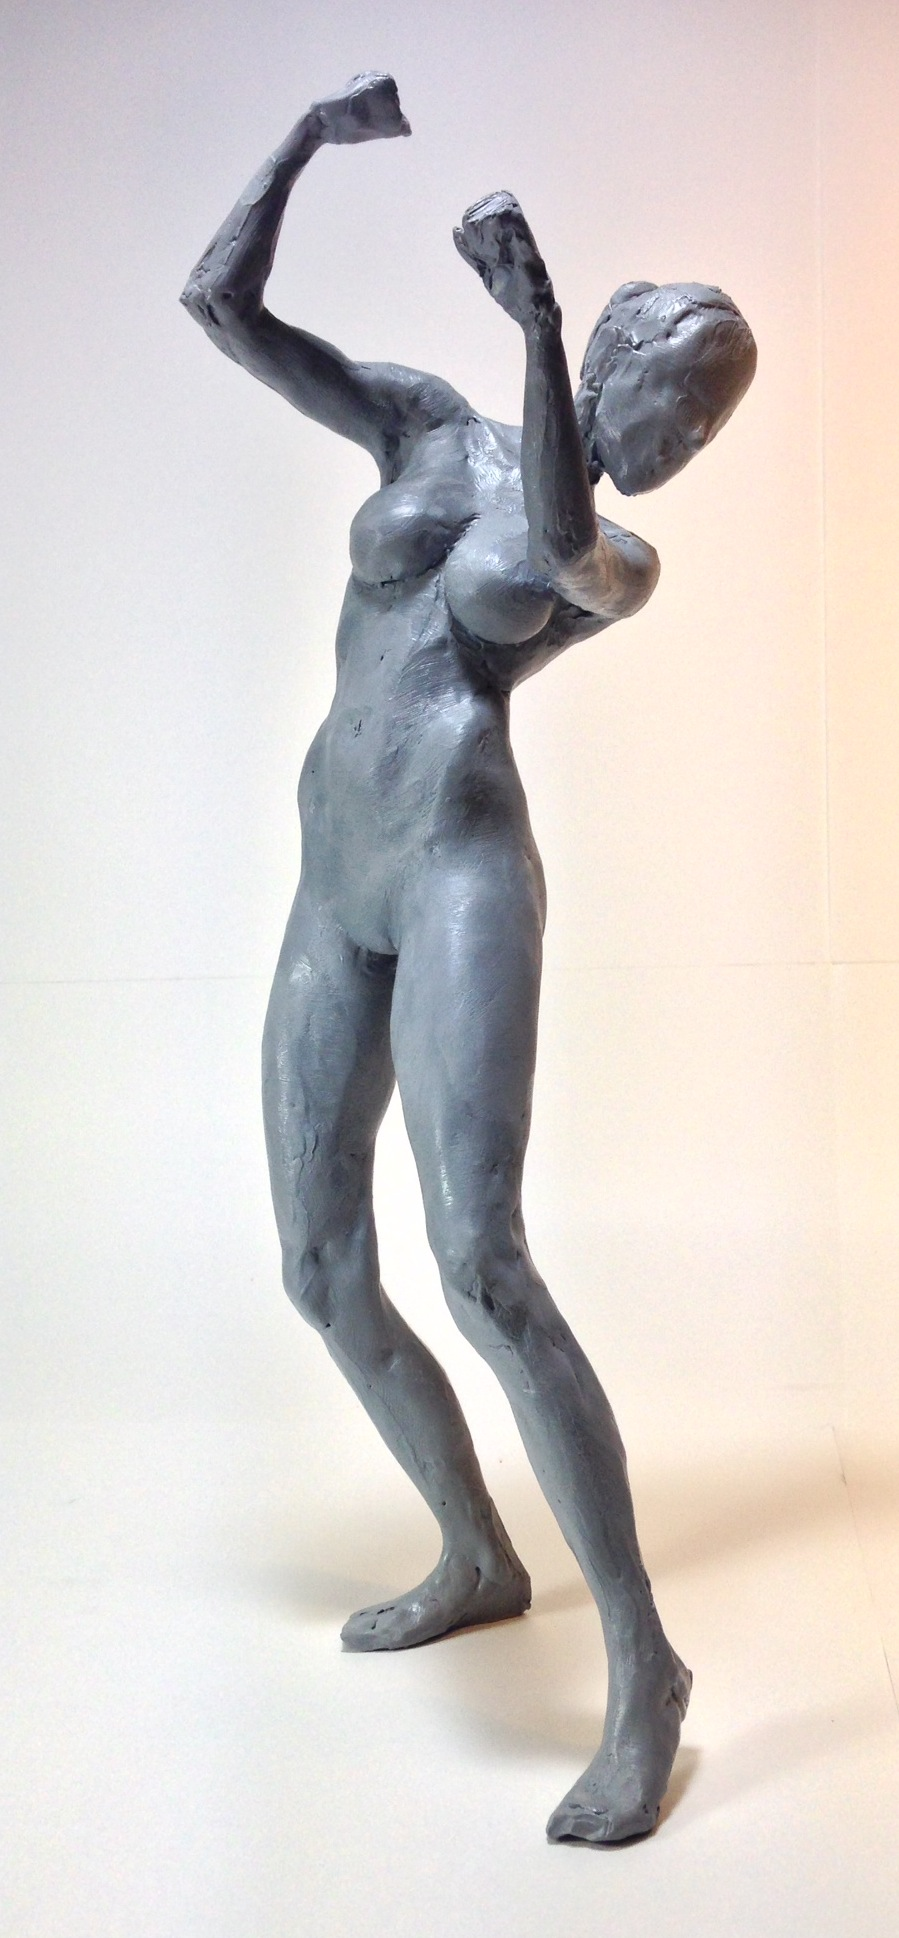 The rough sculpture from Female Figure Sculpting in Cx5s